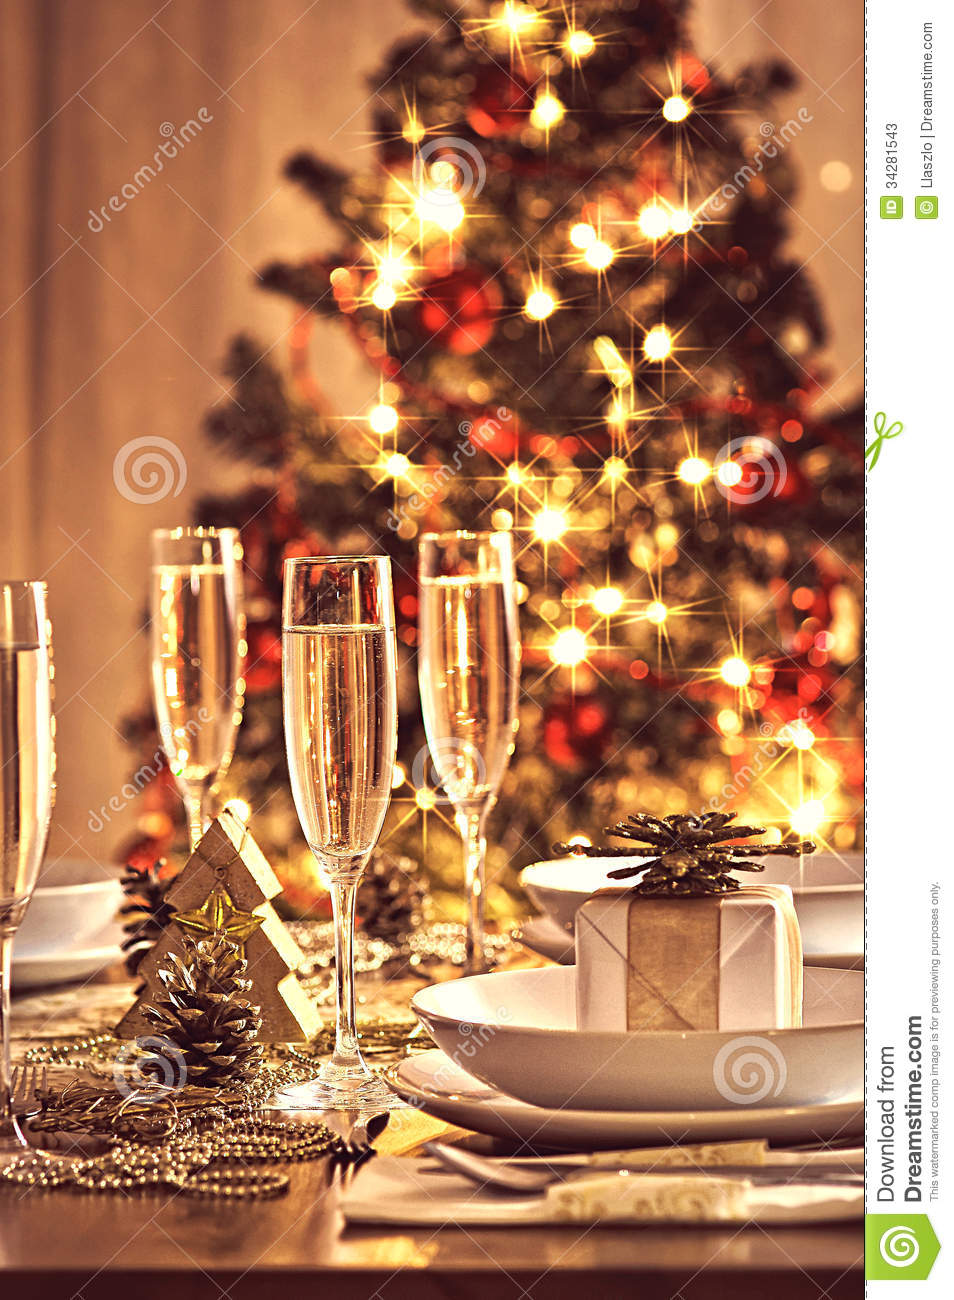 Decorated Christmas Dining Table Stock Photos  Image